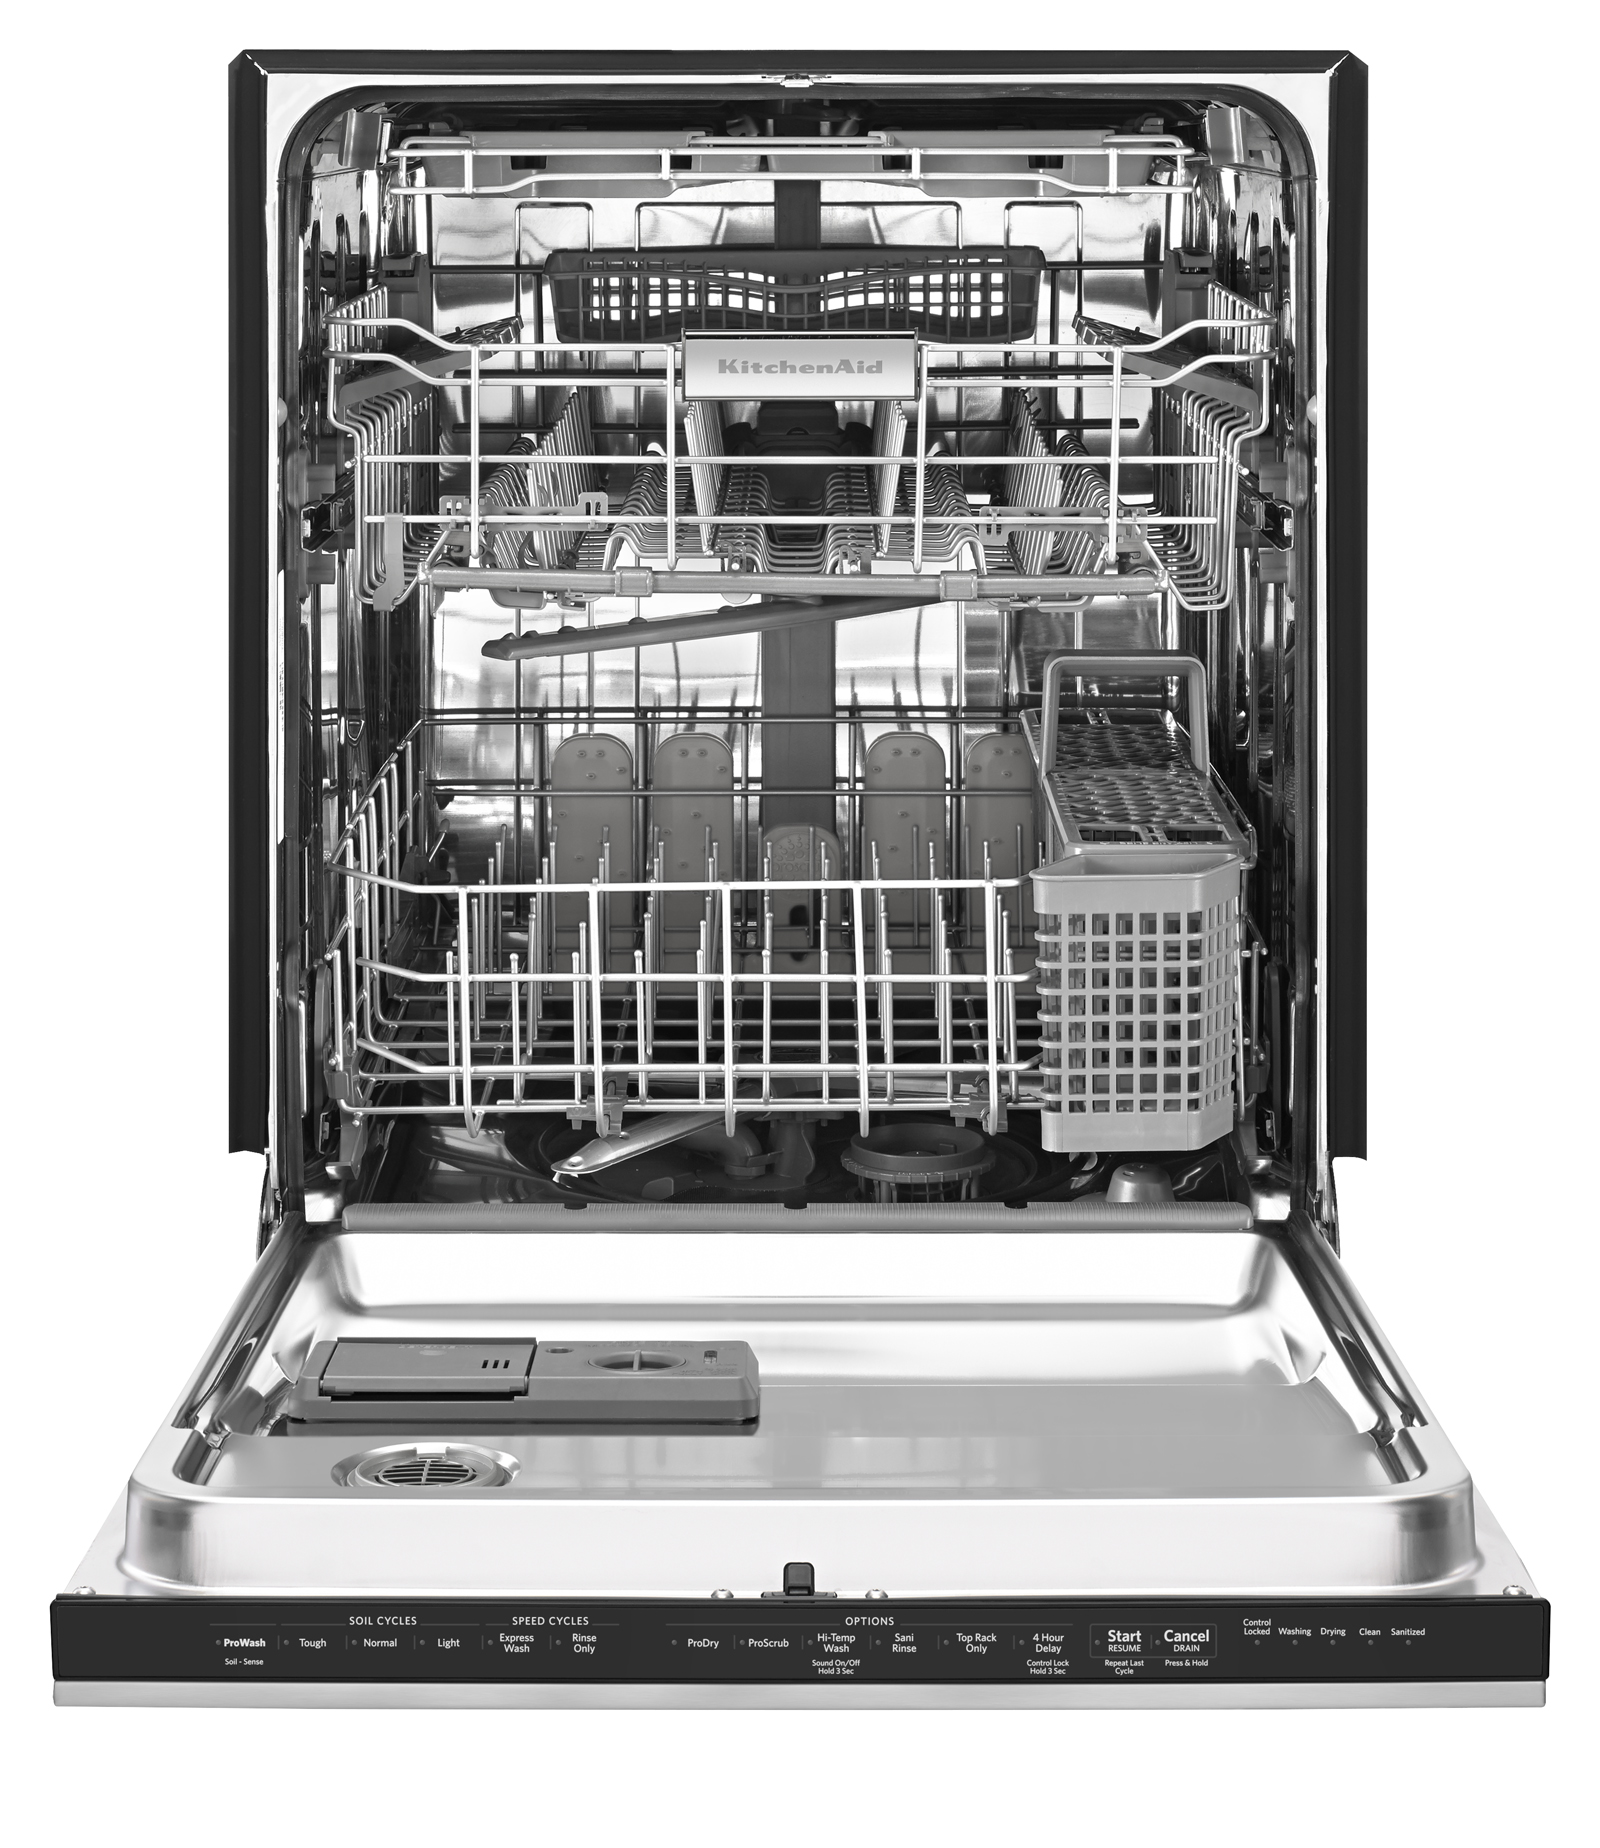 KitchenAid 24-in. Built-in Dishwasher w/ ProScrub® Trio and Third Rack - Custom Panel